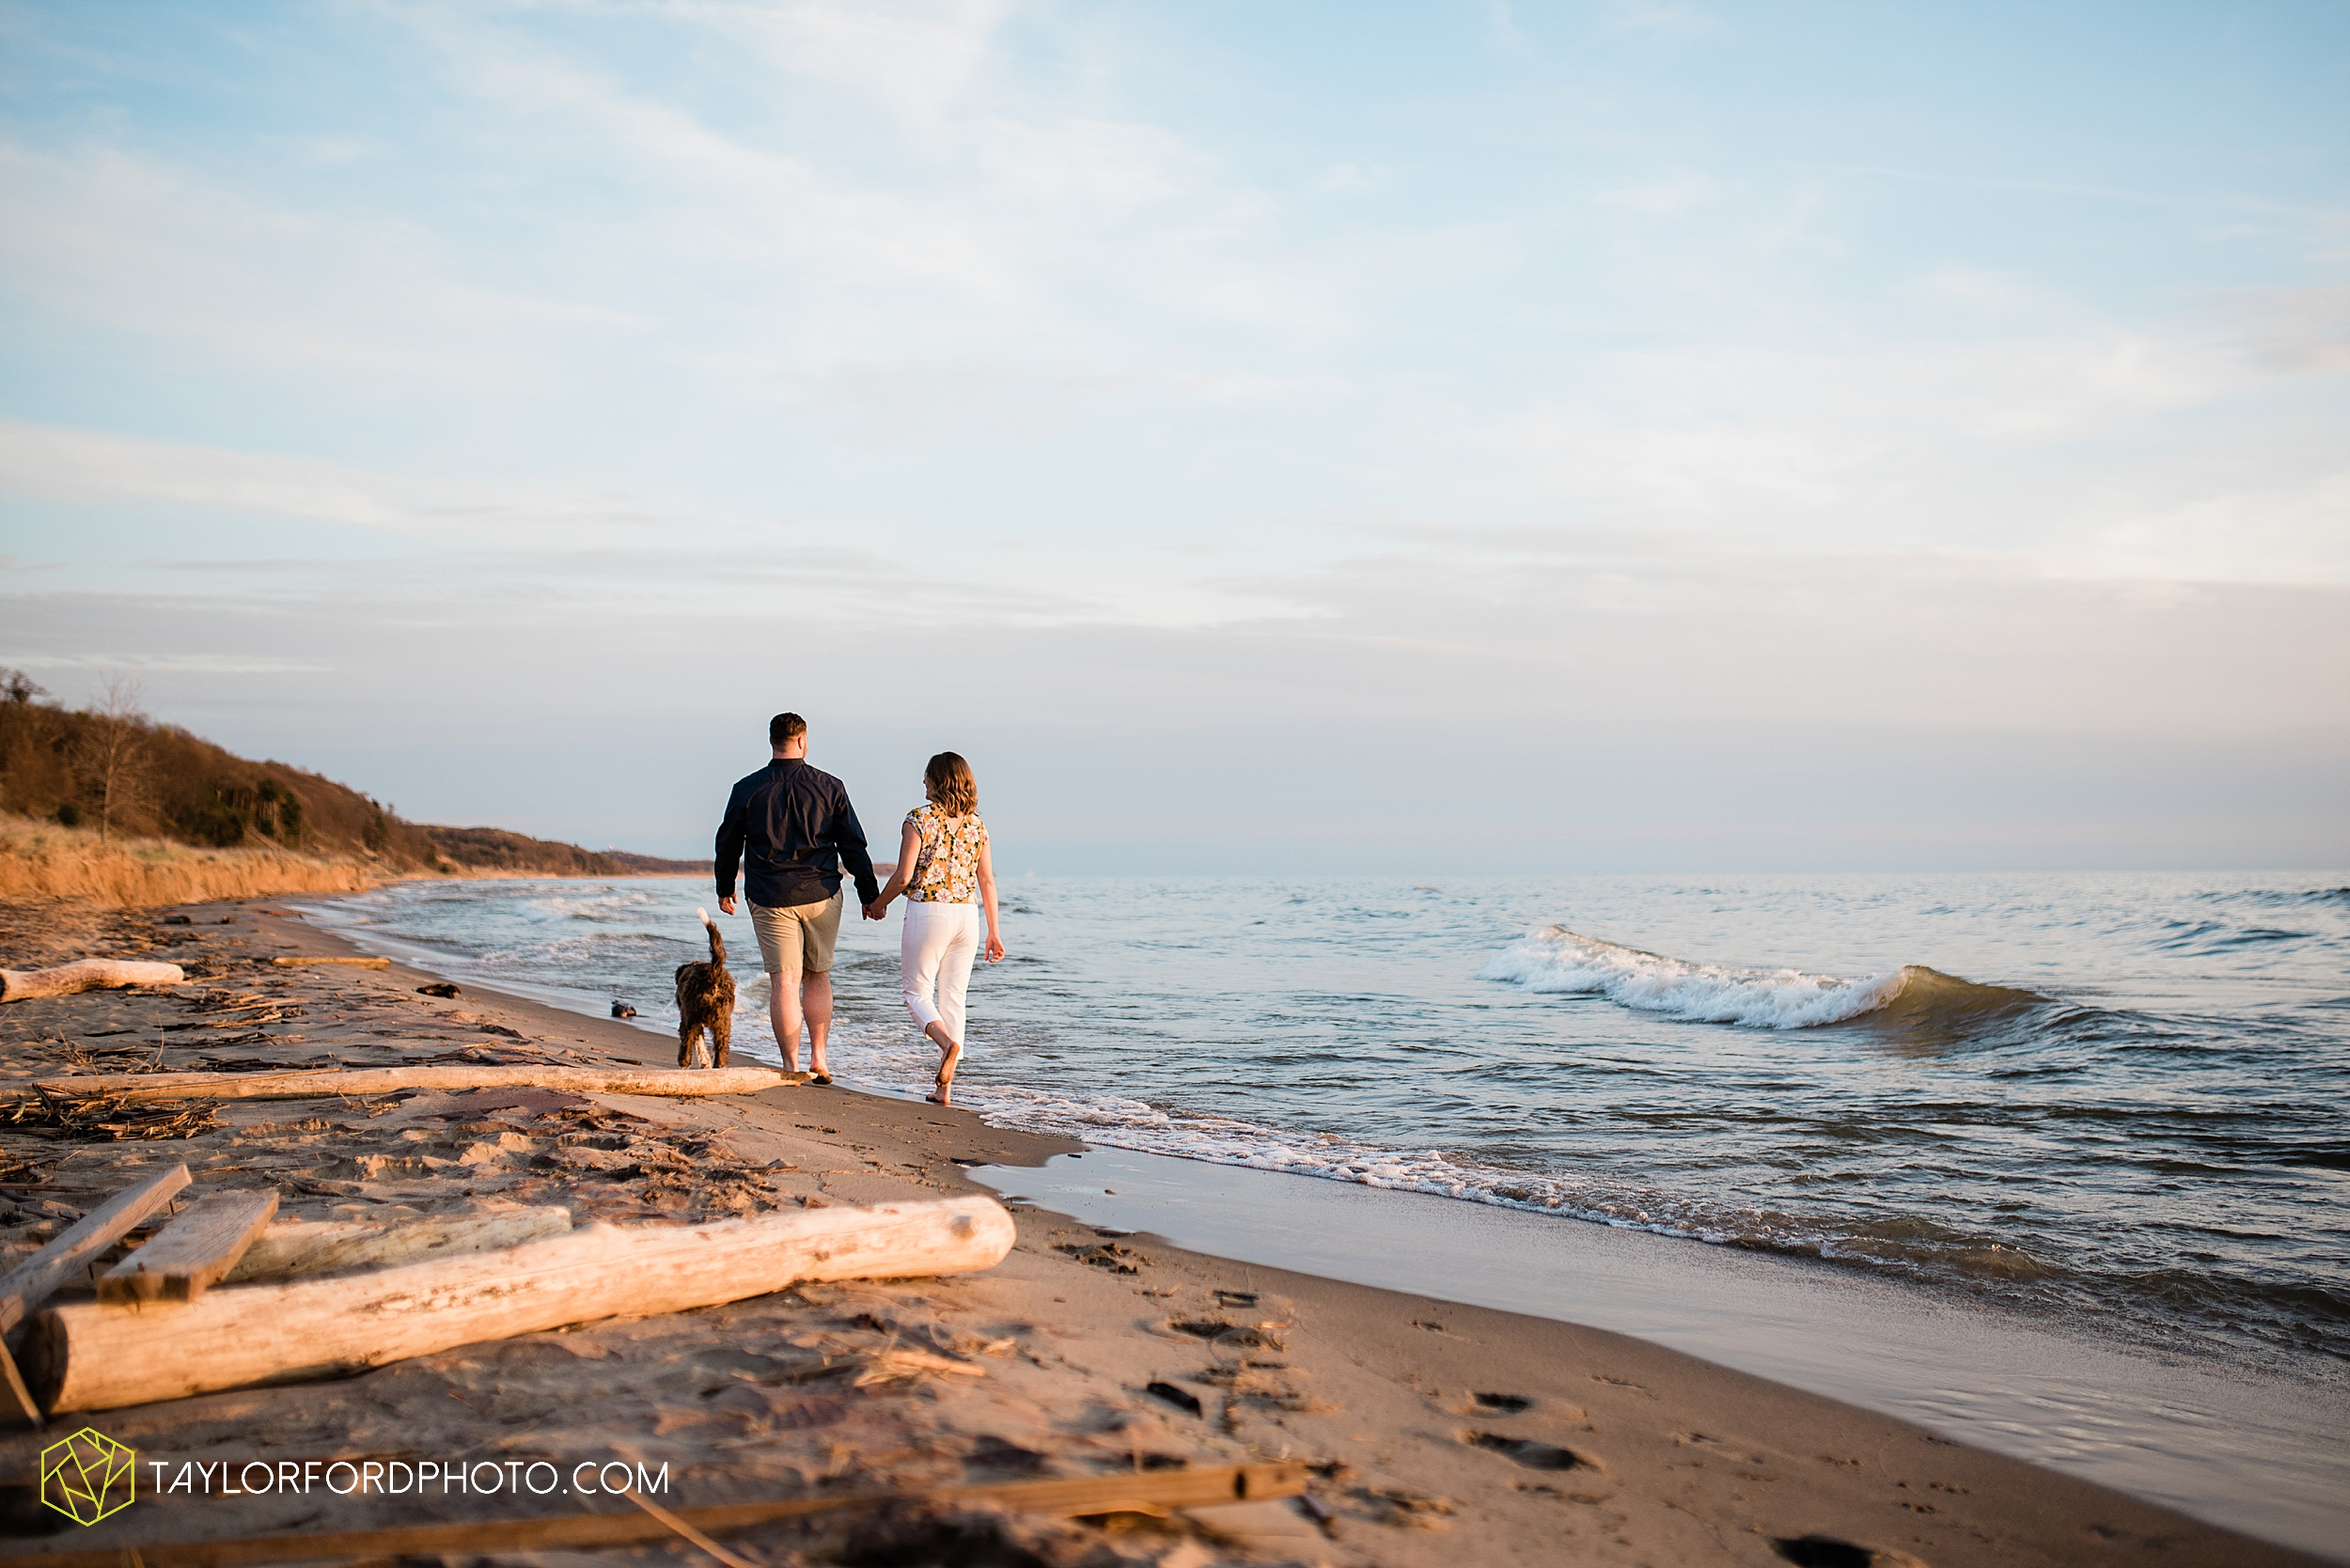 holland-michigan-tulip-time-downtown-hope-college-riverside-park-laketown-beach-lake-michigan-engagement-photographer-photography-taylor-ford-hirschy-photographer_2621.jpg